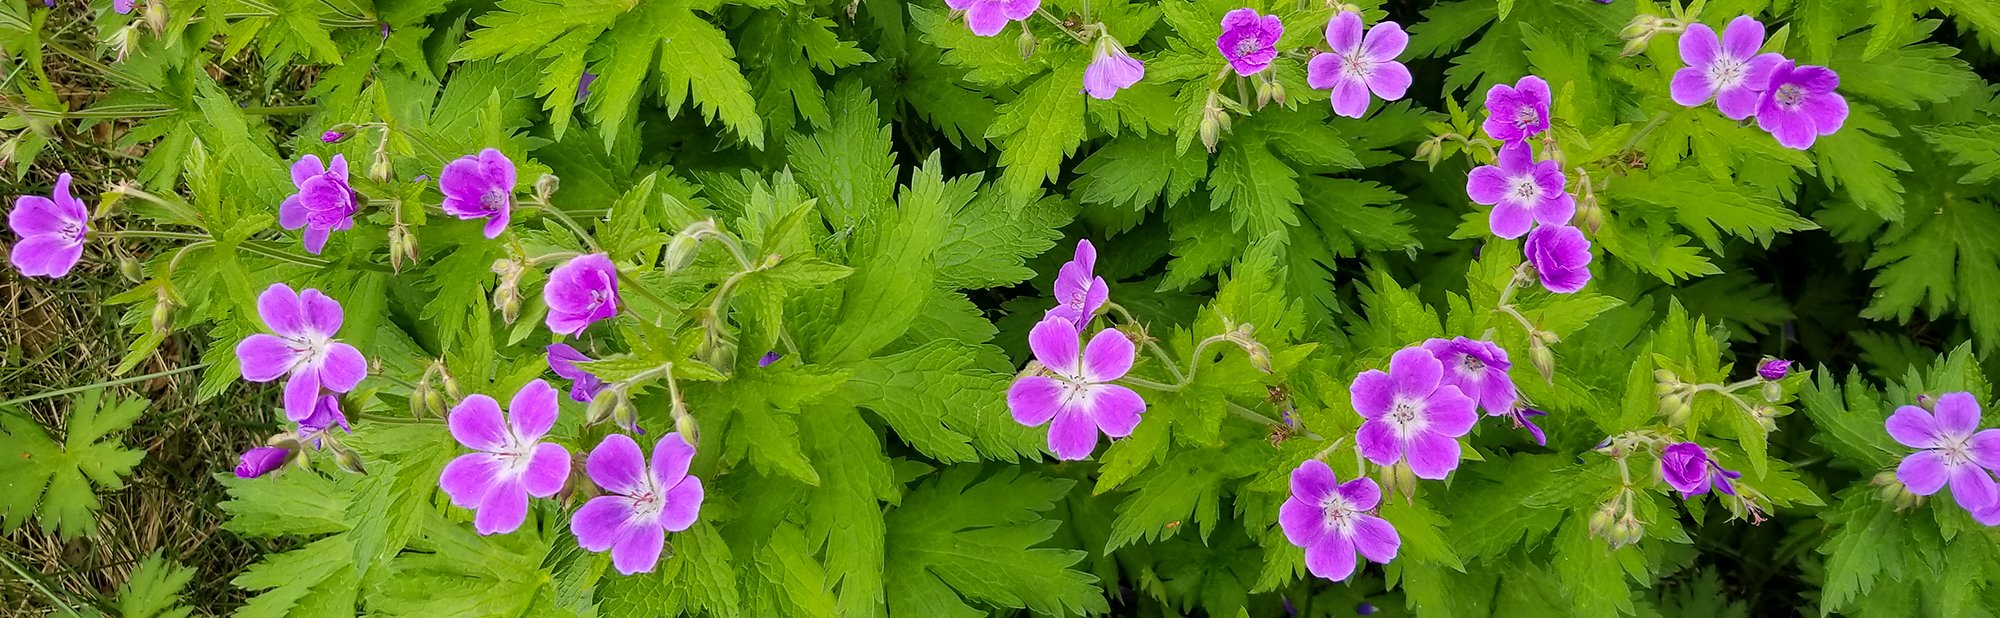 Wood Crane's-bill wildflowers